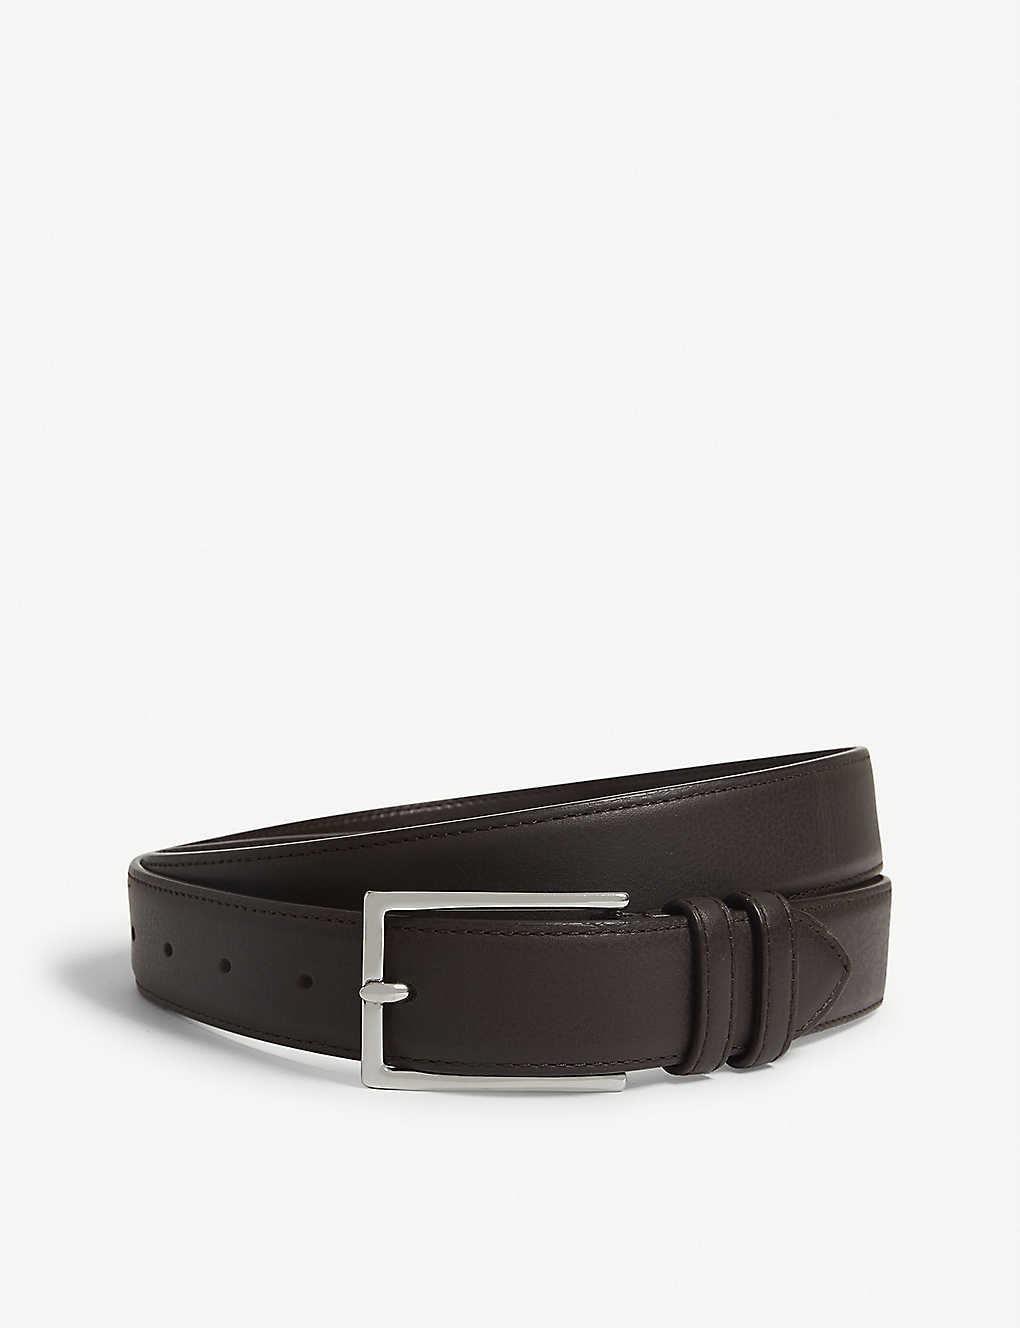 REISS: Martin leather belt